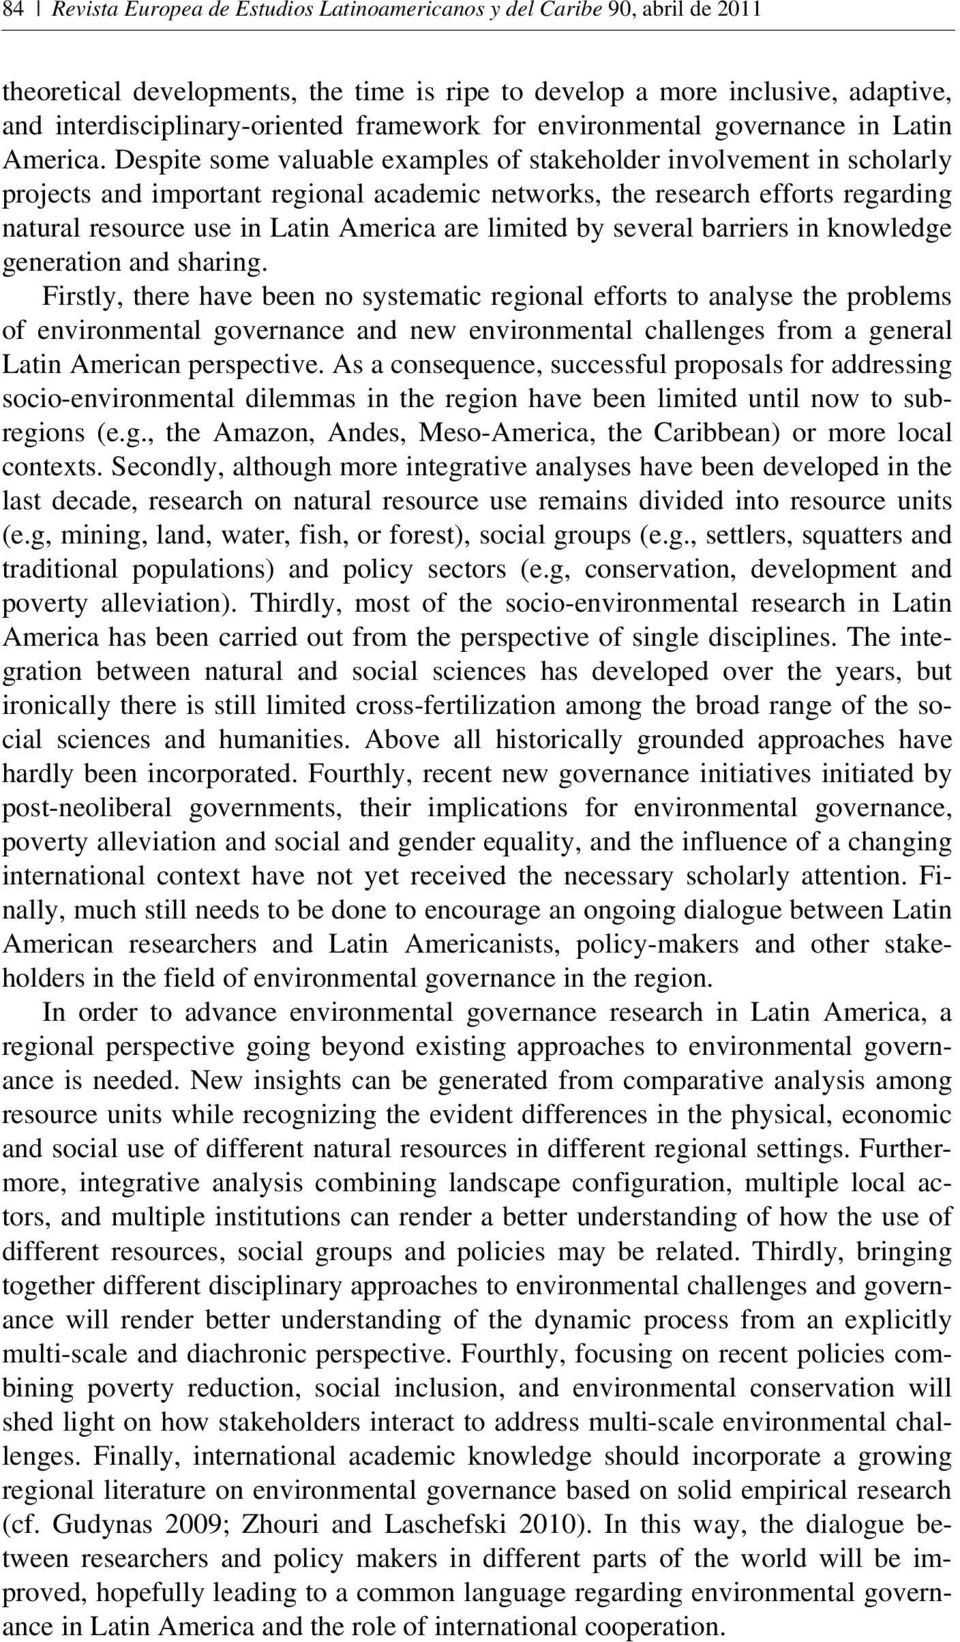 Despite some valuable examples of stakeholder involvement in scholarly projects and important regional academic networks, the research efforts regarding natural resource use in Latin America are